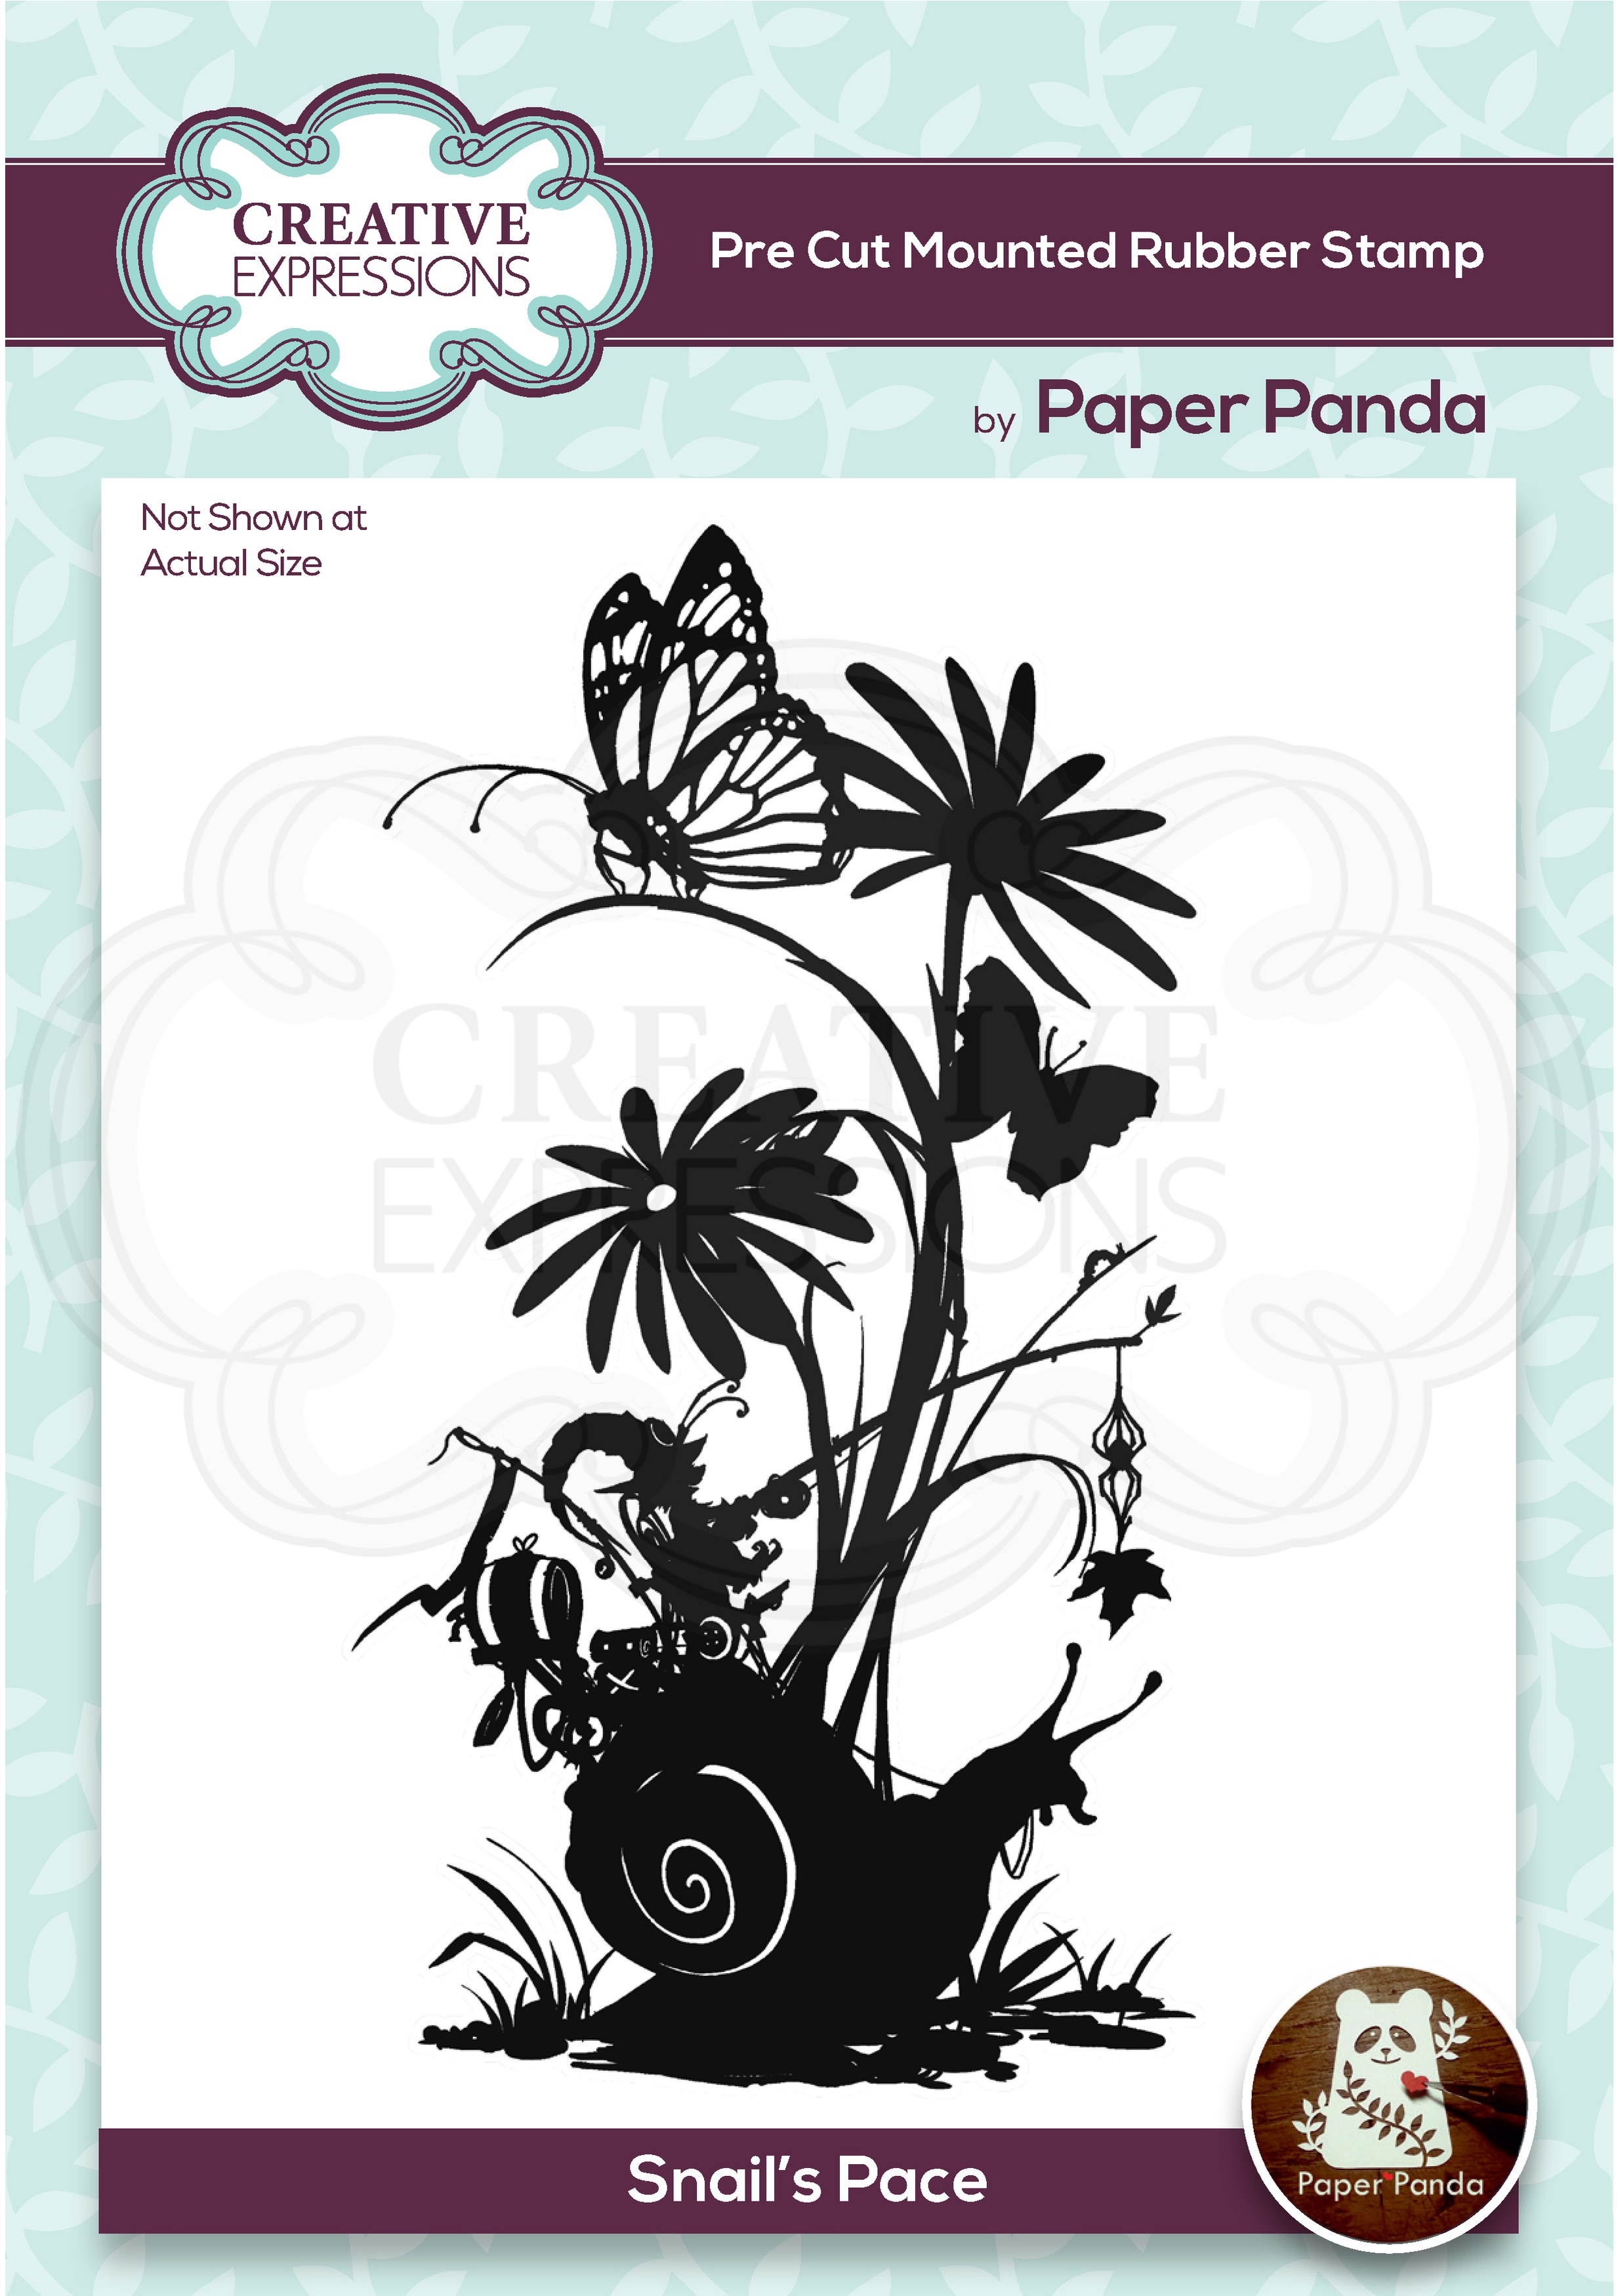 CREATIVE EXPRESSIONS STAMPS: SNAIL'S PACE